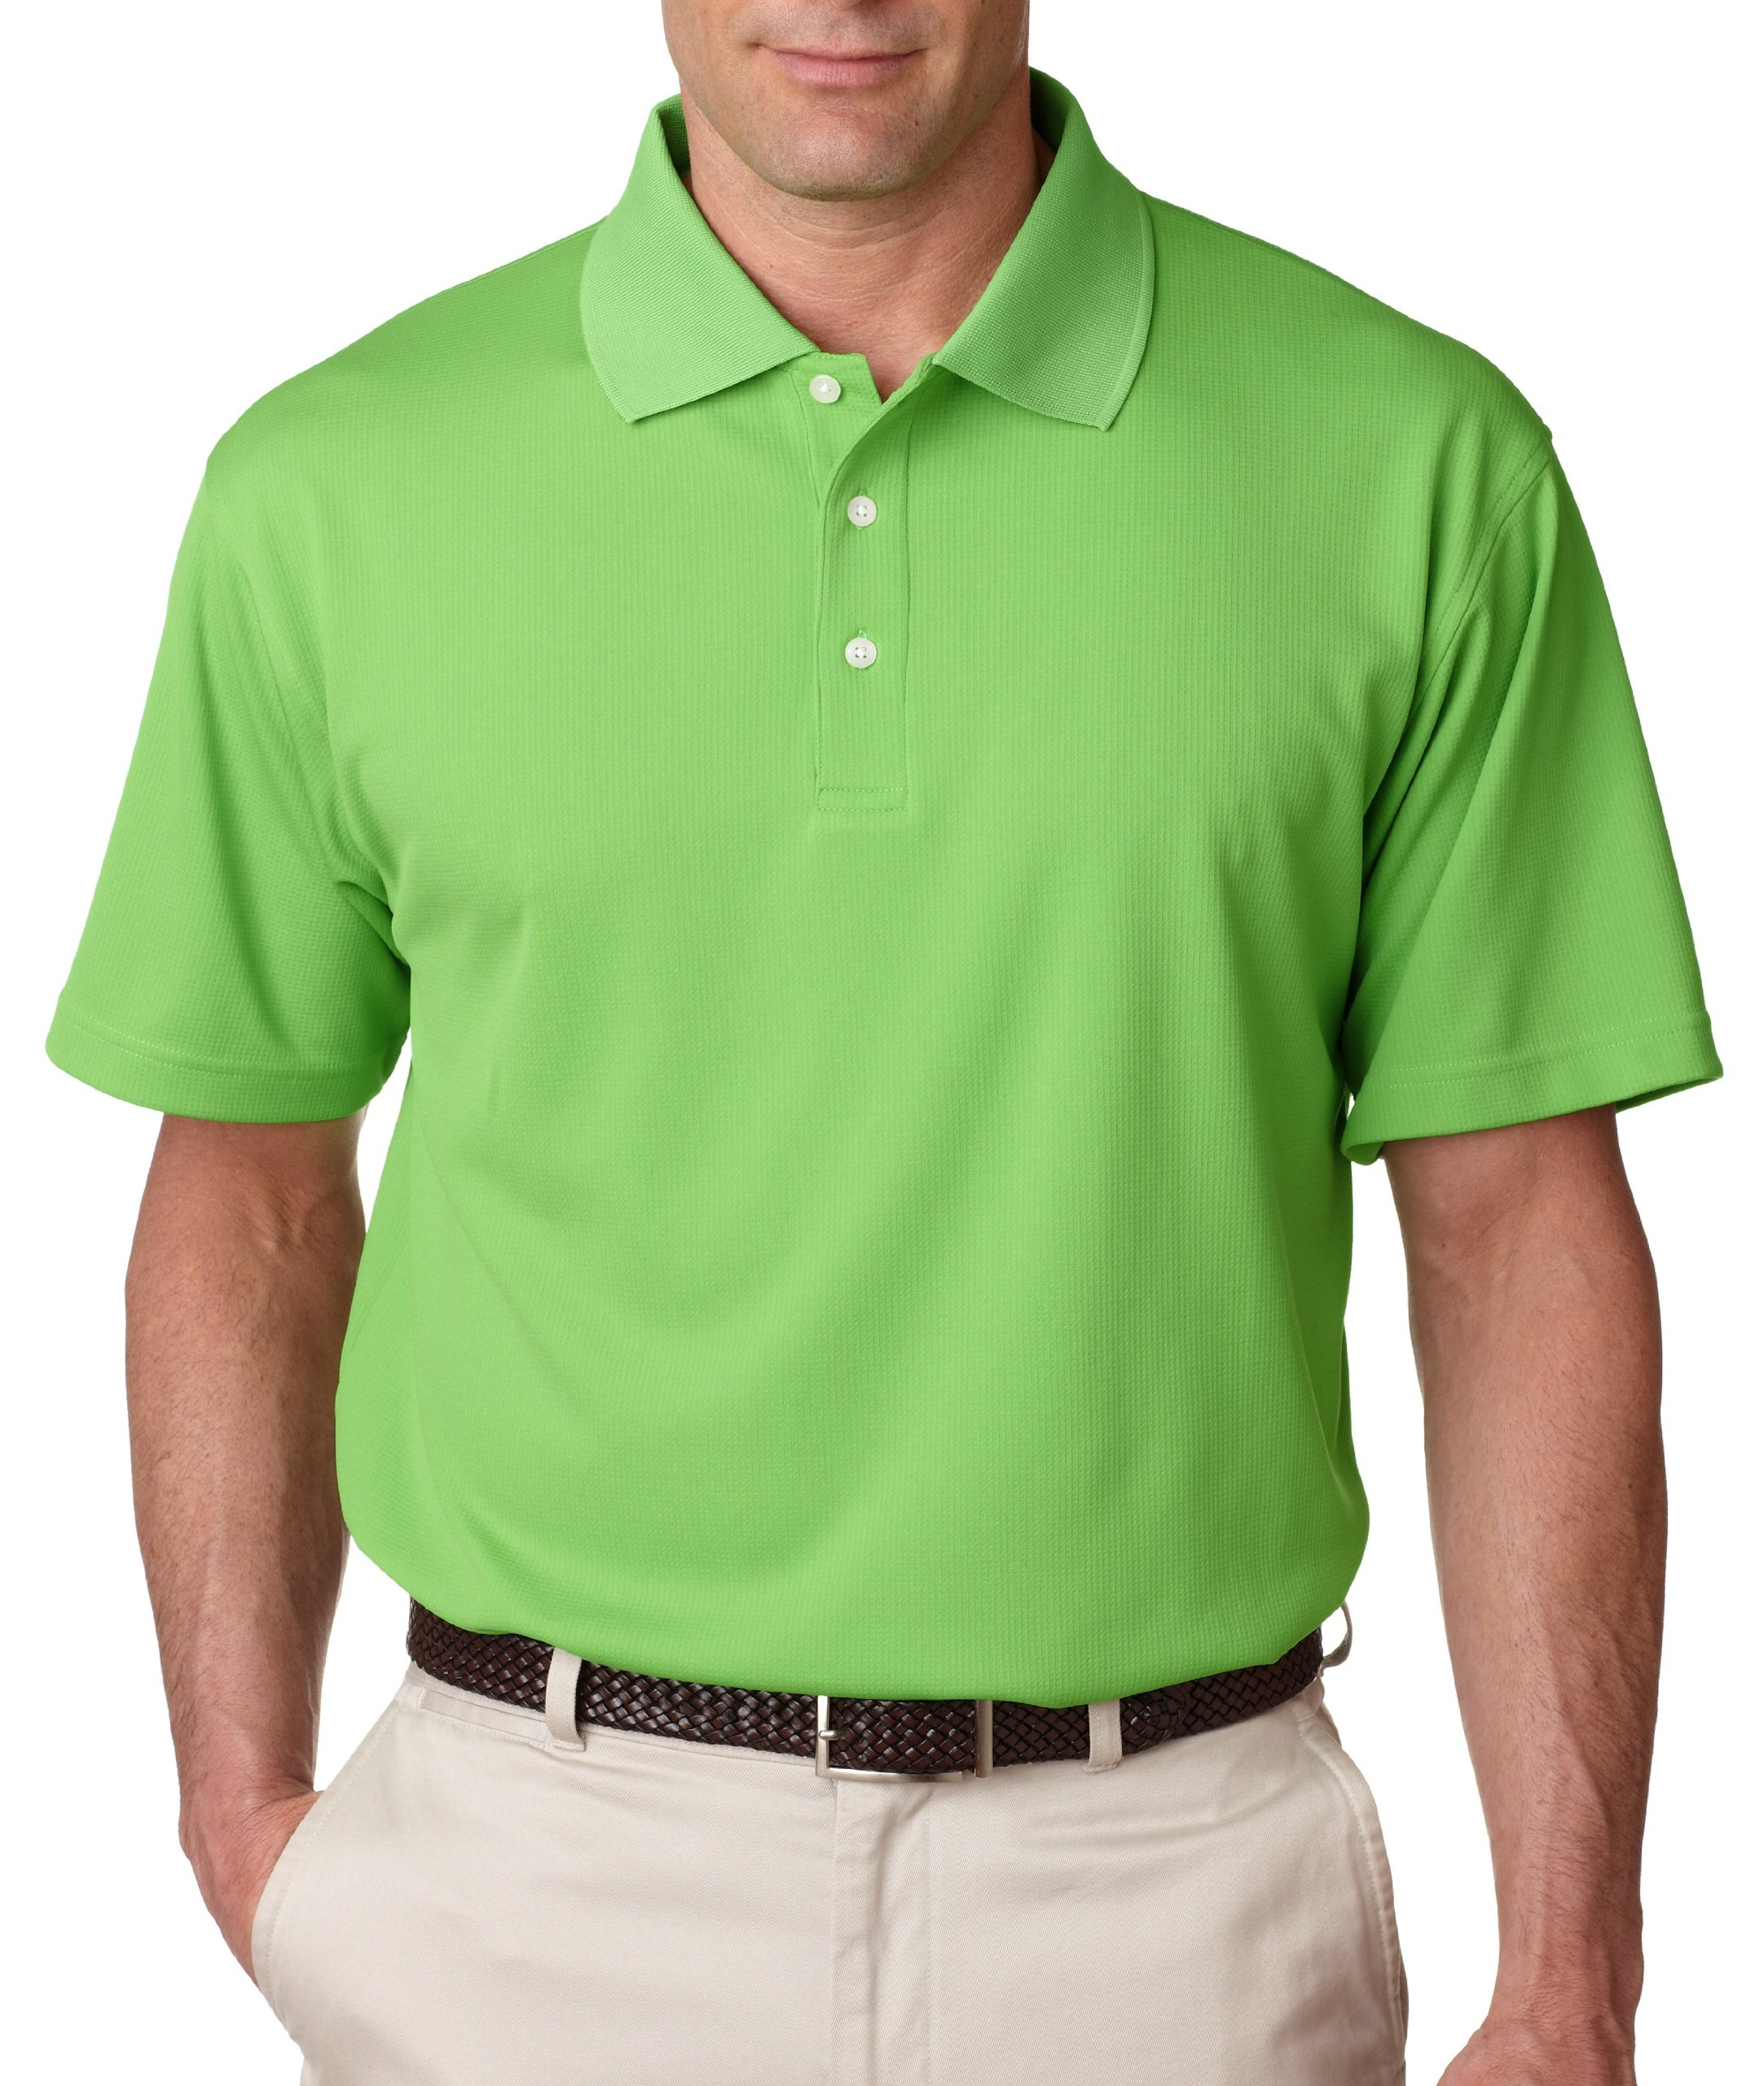 118a8712b How To Spot A Fake Lacoste Polo Shirt